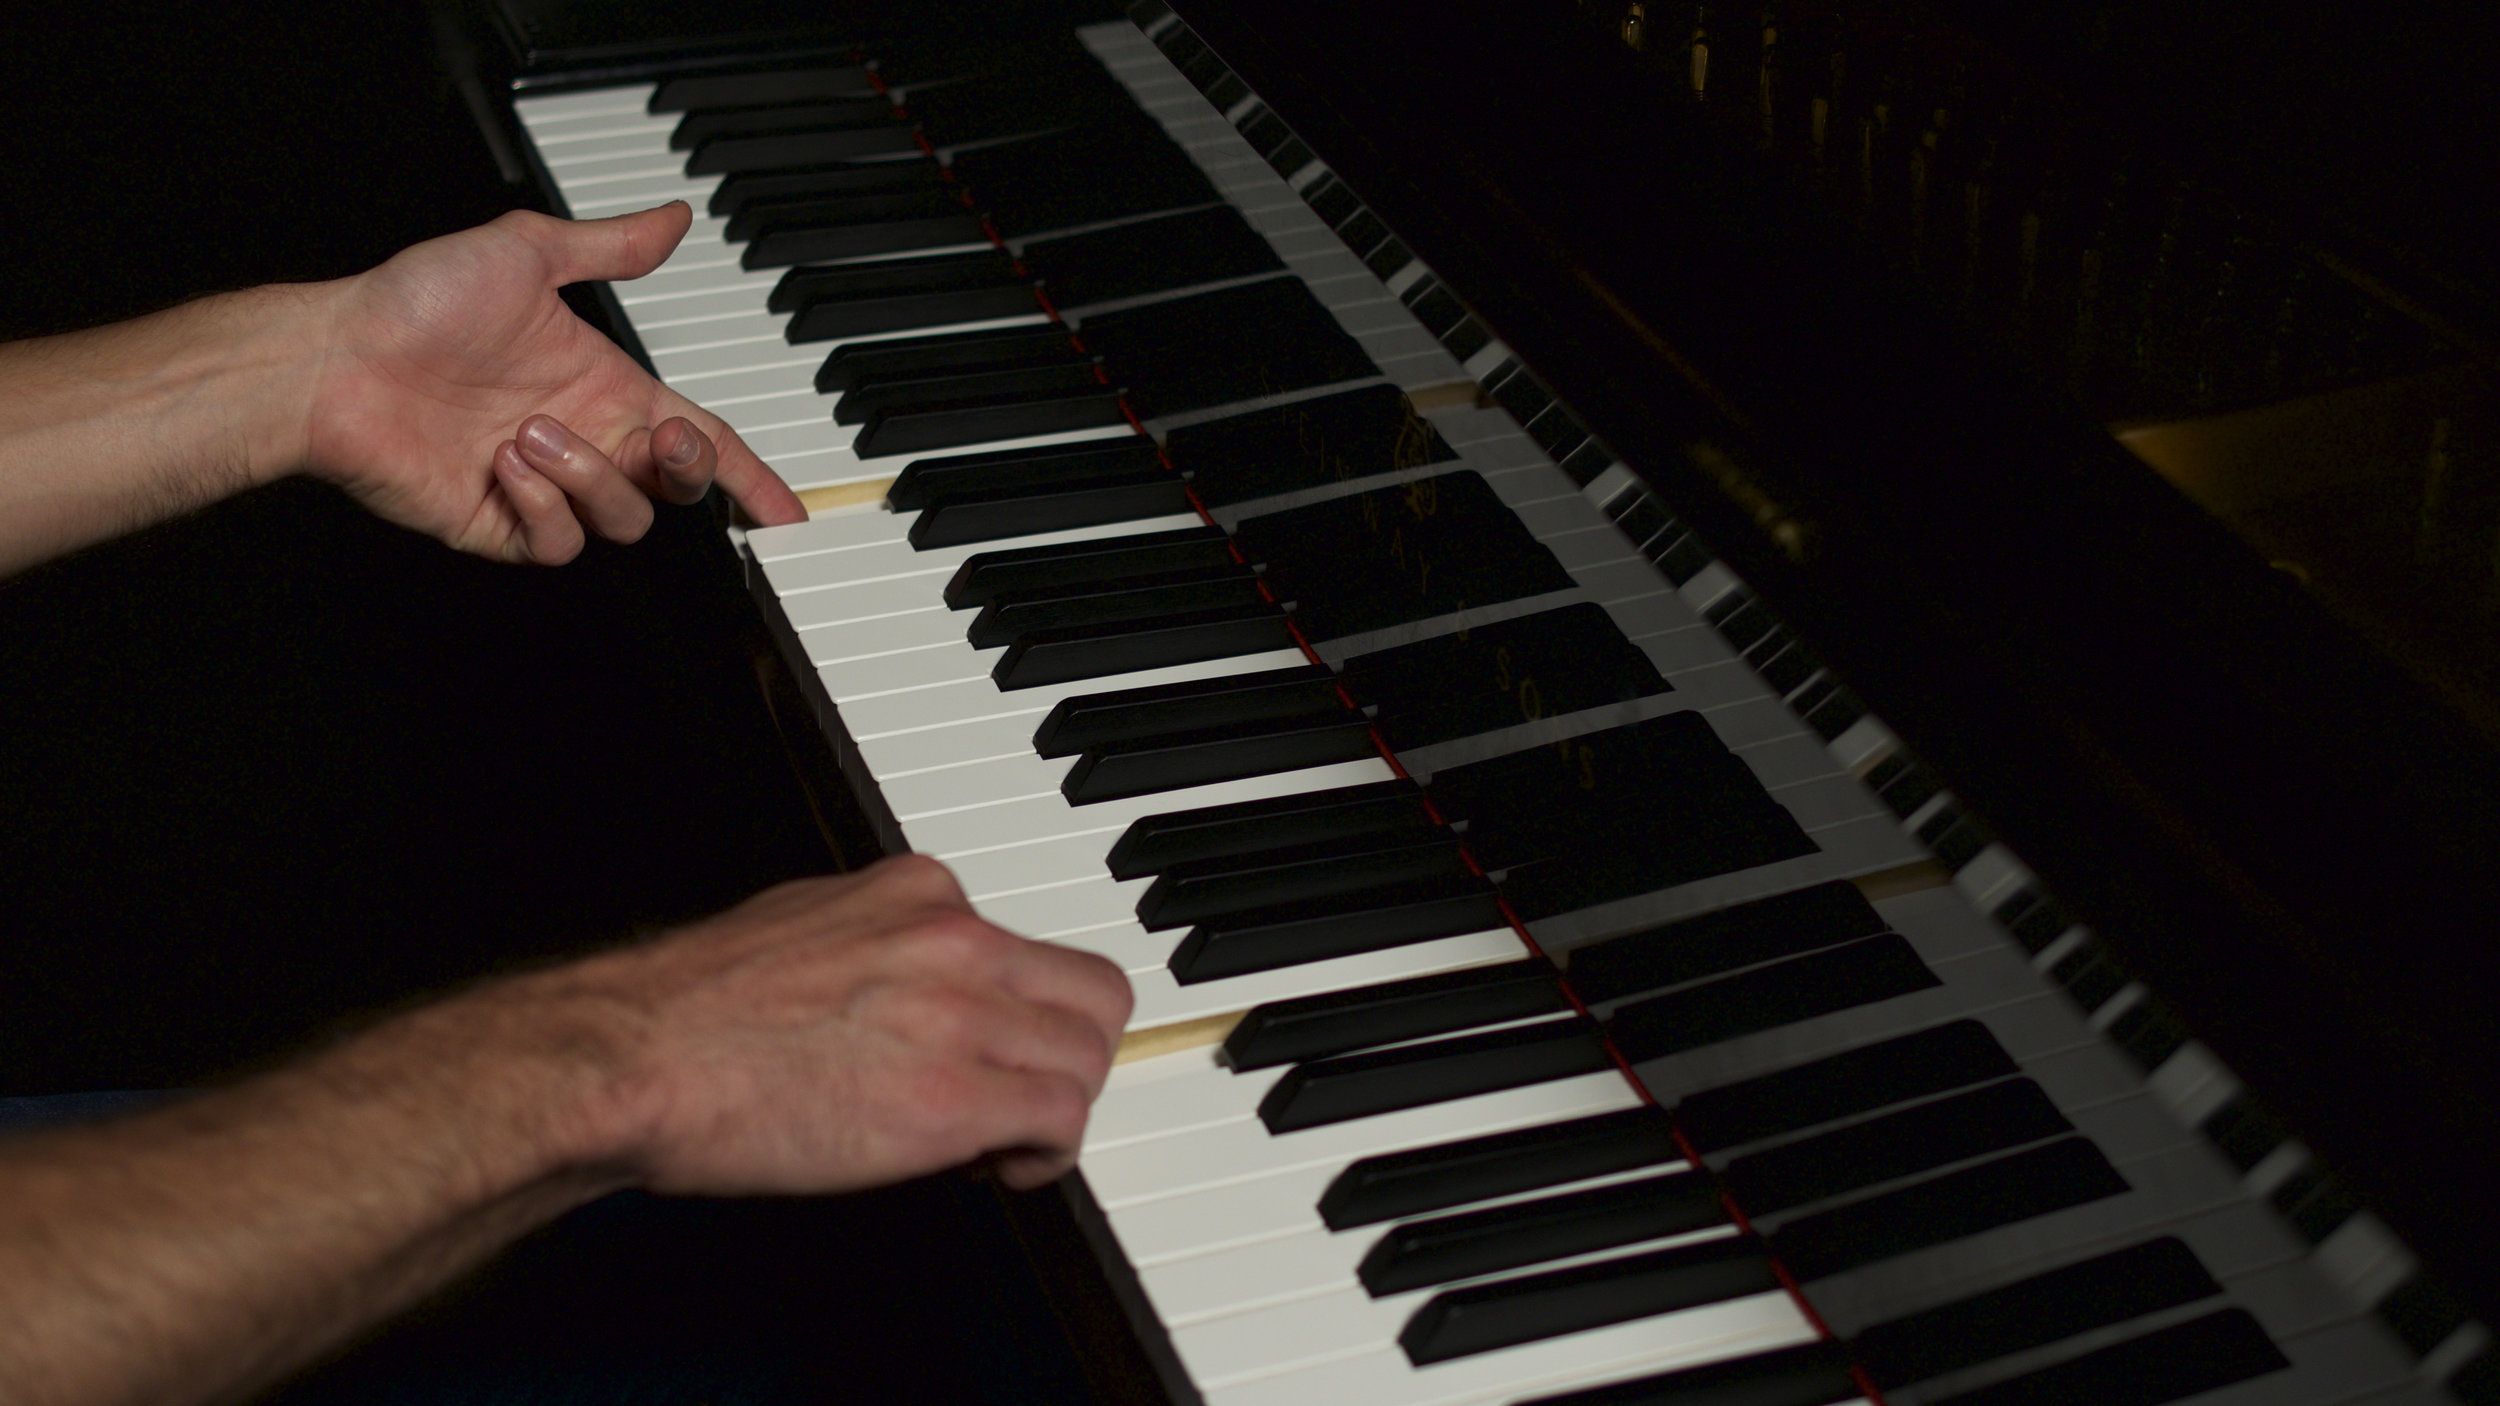 Taken during a recording session of my debut CD.Photo credit: Colin Mahoney